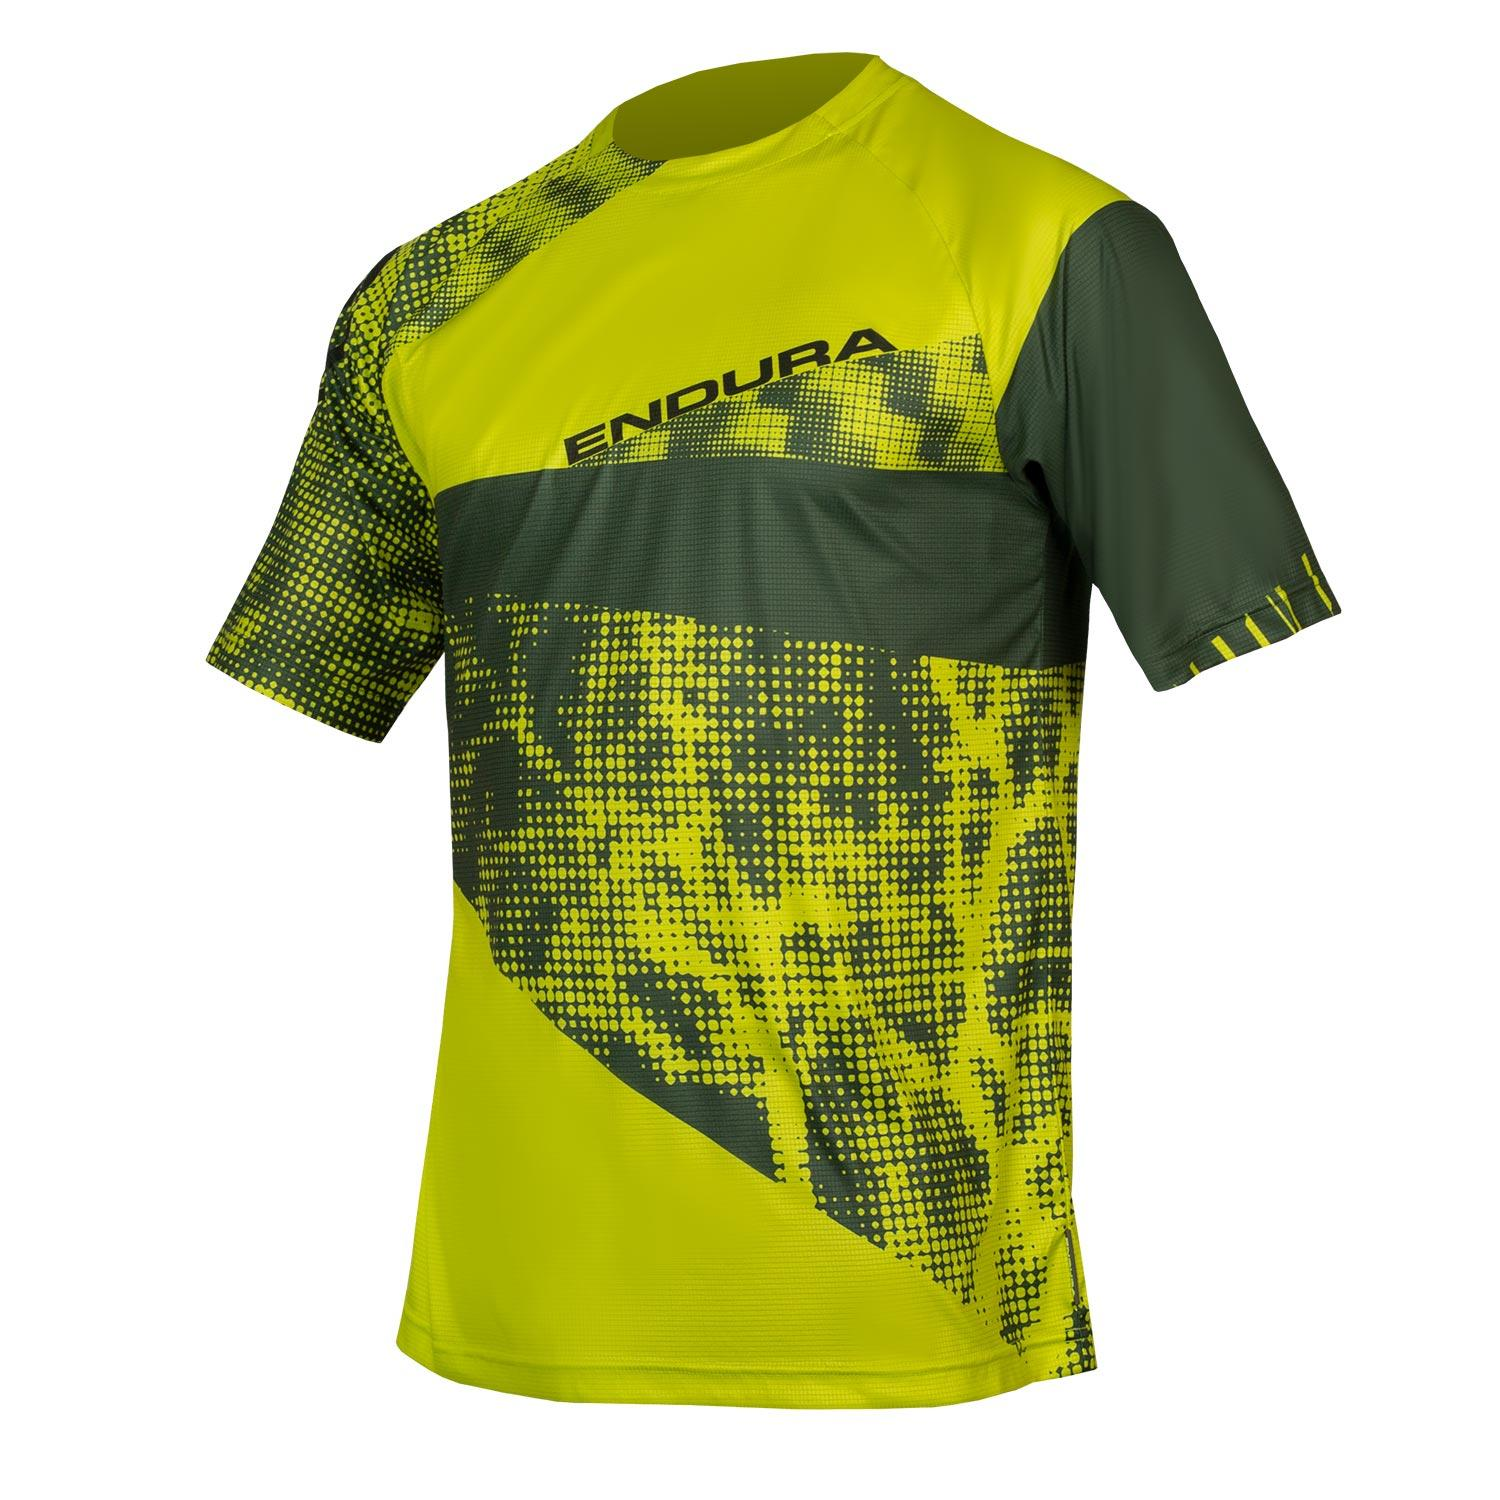 Endura Wielershirt MTB Korte Mouwen voor Heren Limoen Groen / Singletrack Dots T LTD Lime Green